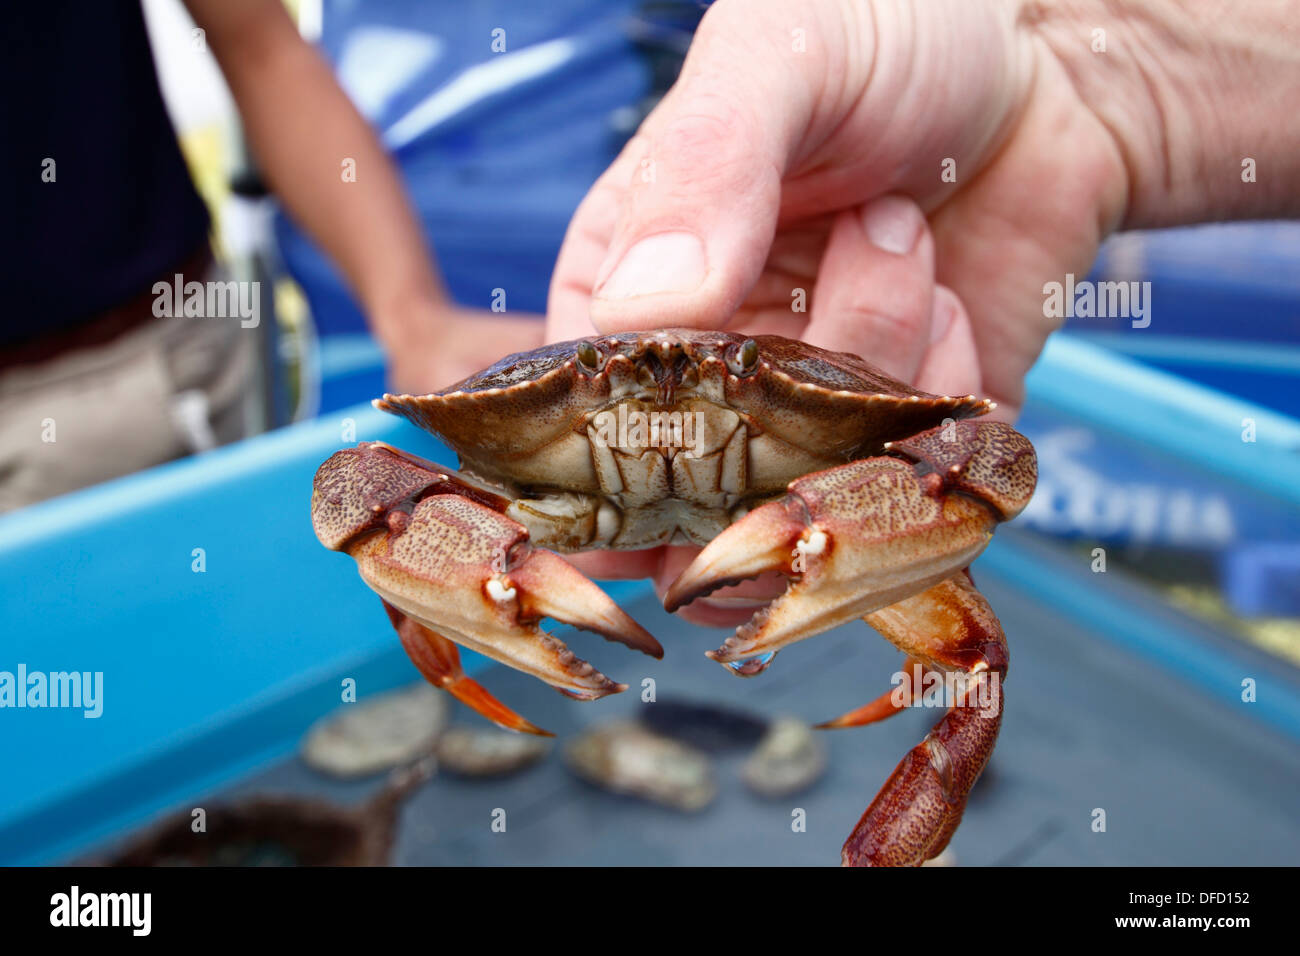 An live Atlantic rock crab held in a hand Stock Photo